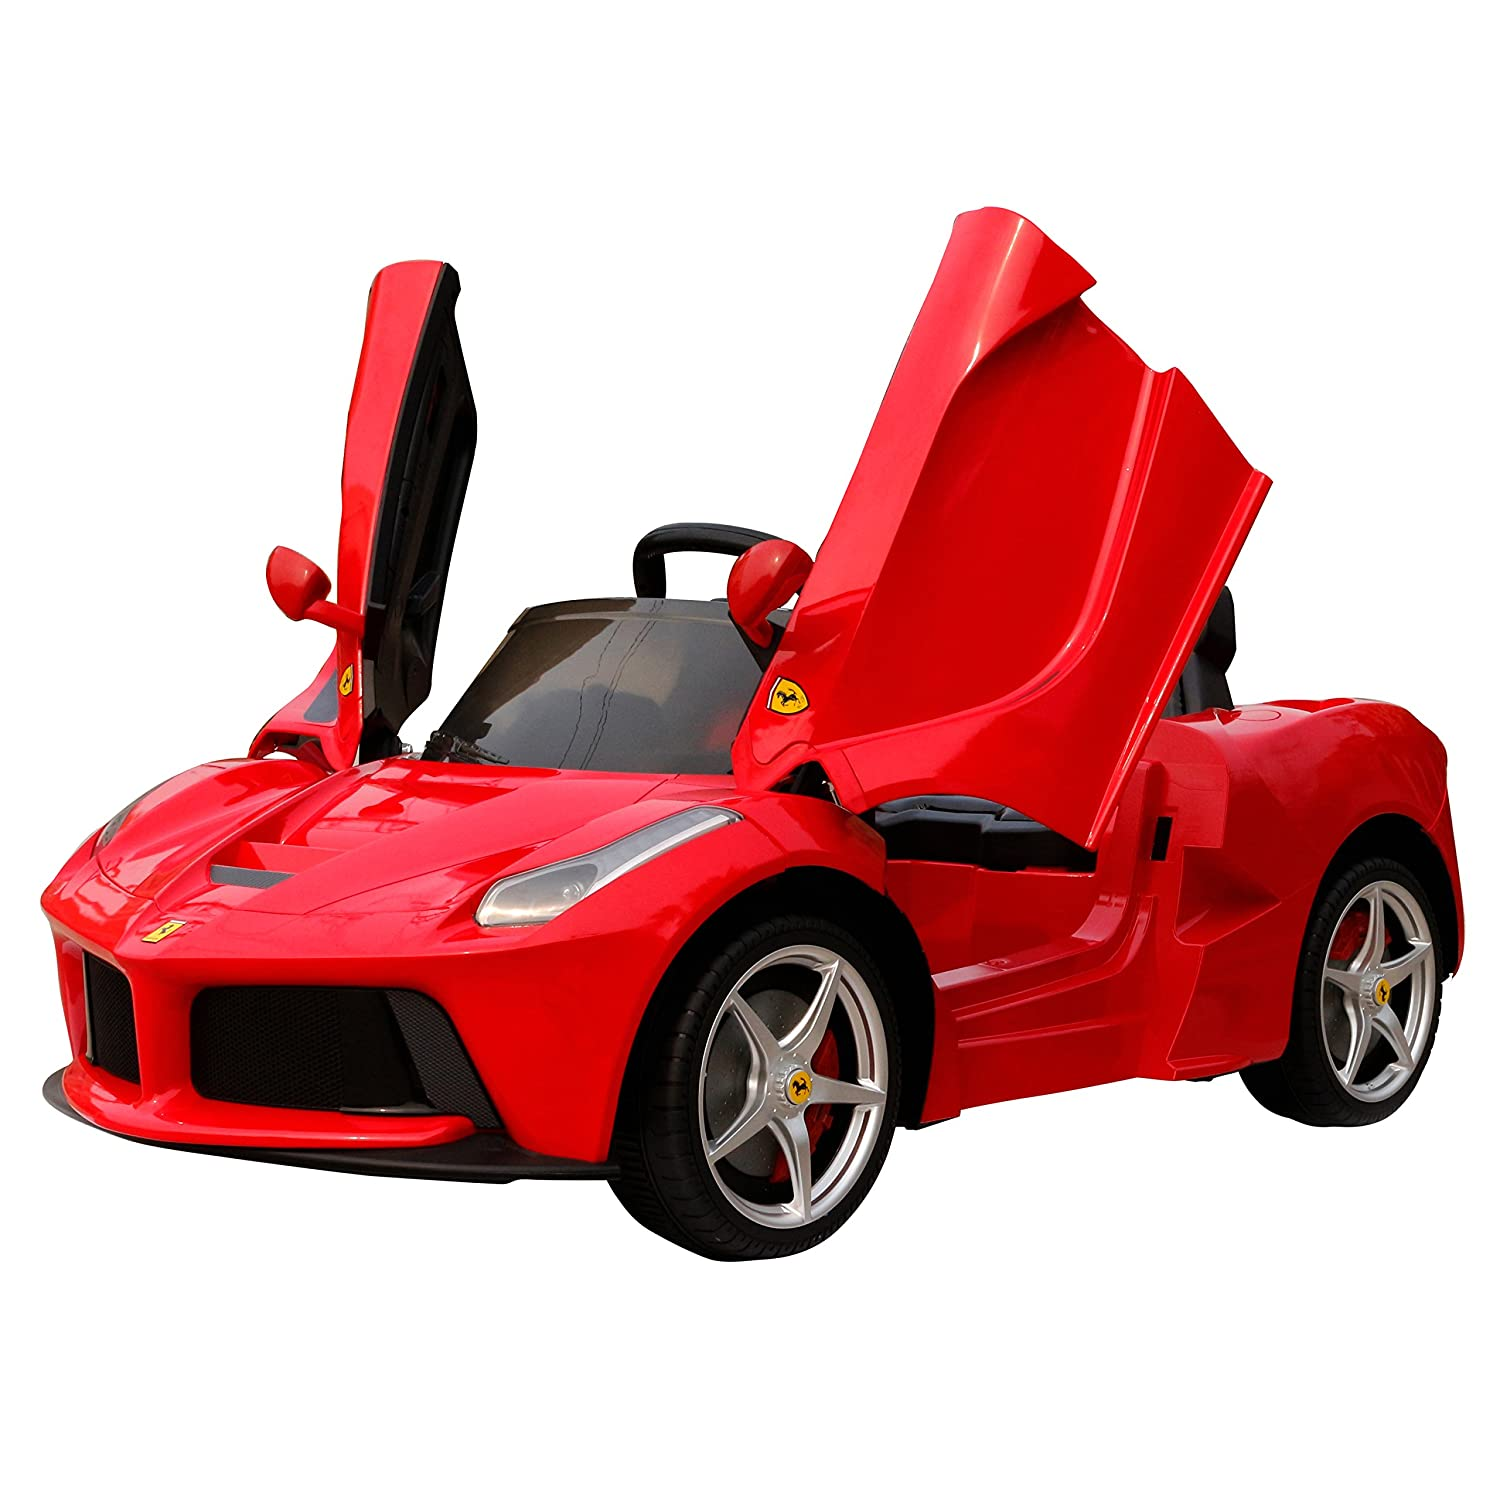 new rastar la ferrari 12v red licensed ride on car electric car with parental remote control new model for xmas 2017 amazoncouk toys games